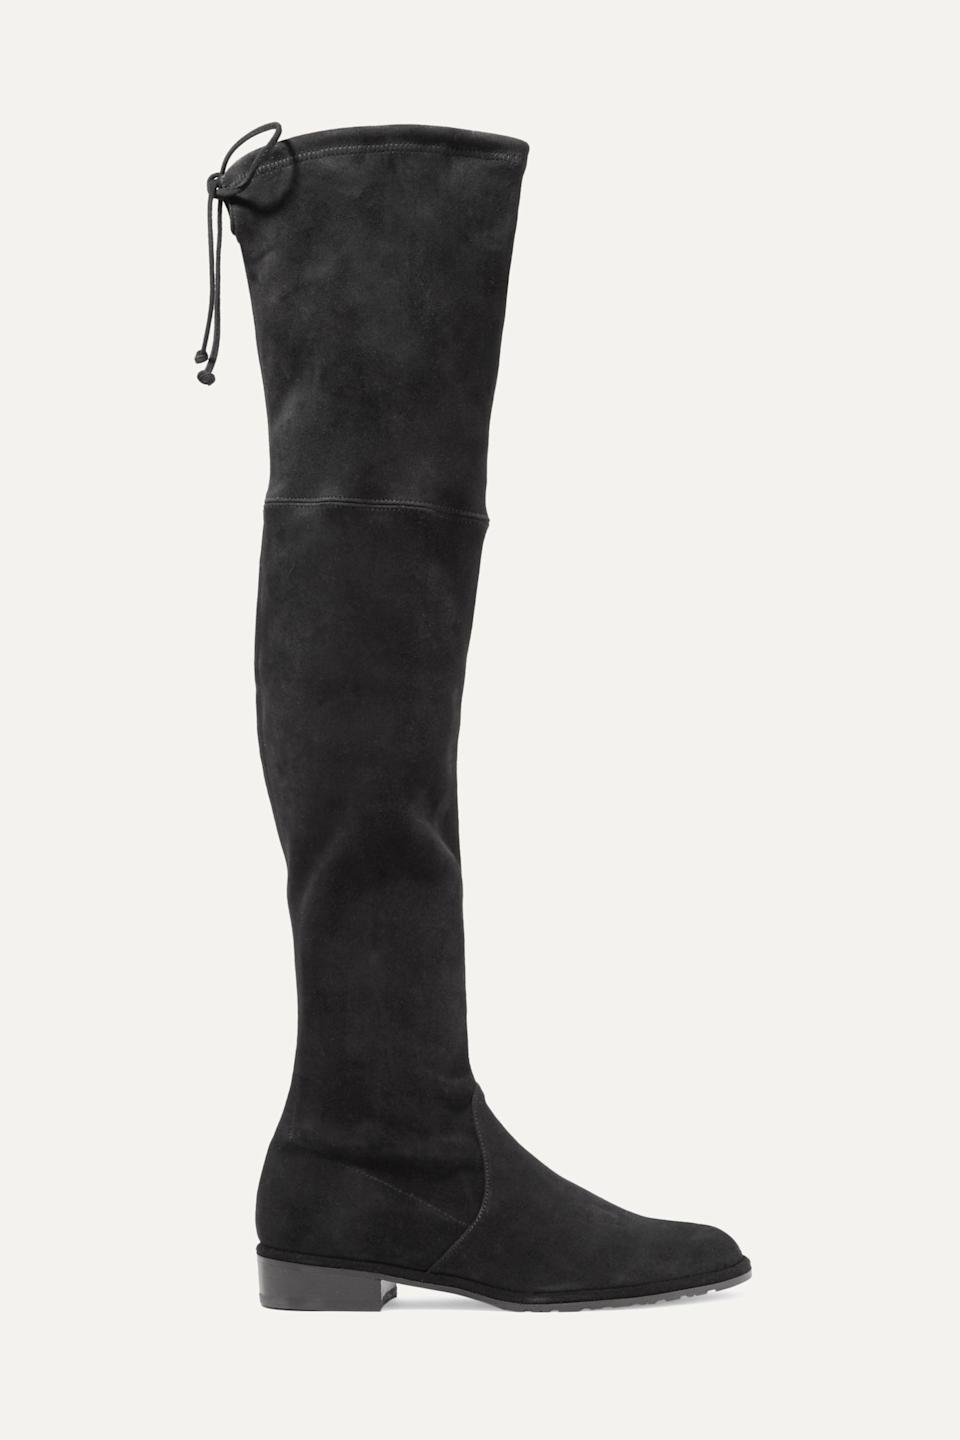 """<p><strong>Stuart Weitzman</strong></p><p><strong>$473.81</strong></p><p><a href=""""https://www.amazon.com/Stuart-Weitzman-Womens-Lowland-Medium/dp/B005A9XFJY/?tag=syn-yahoo-20&ascsubtag=%5Bartid%7C10067.g.28225508%5Bsrc%7Cyahoo-us"""" rel=""""nofollow noopener"""" target=""""_blank"""" data-ylk=""""slk:Shop Now"""" class=""""link rapid-noclick-resp"""">Shop Now</a></p><p>Stuart Weitzman is justifiably famous for his over the knee boots, and this fall is the ideal time to finally invest in a pair. You'll wear them everywhere. </p>"""